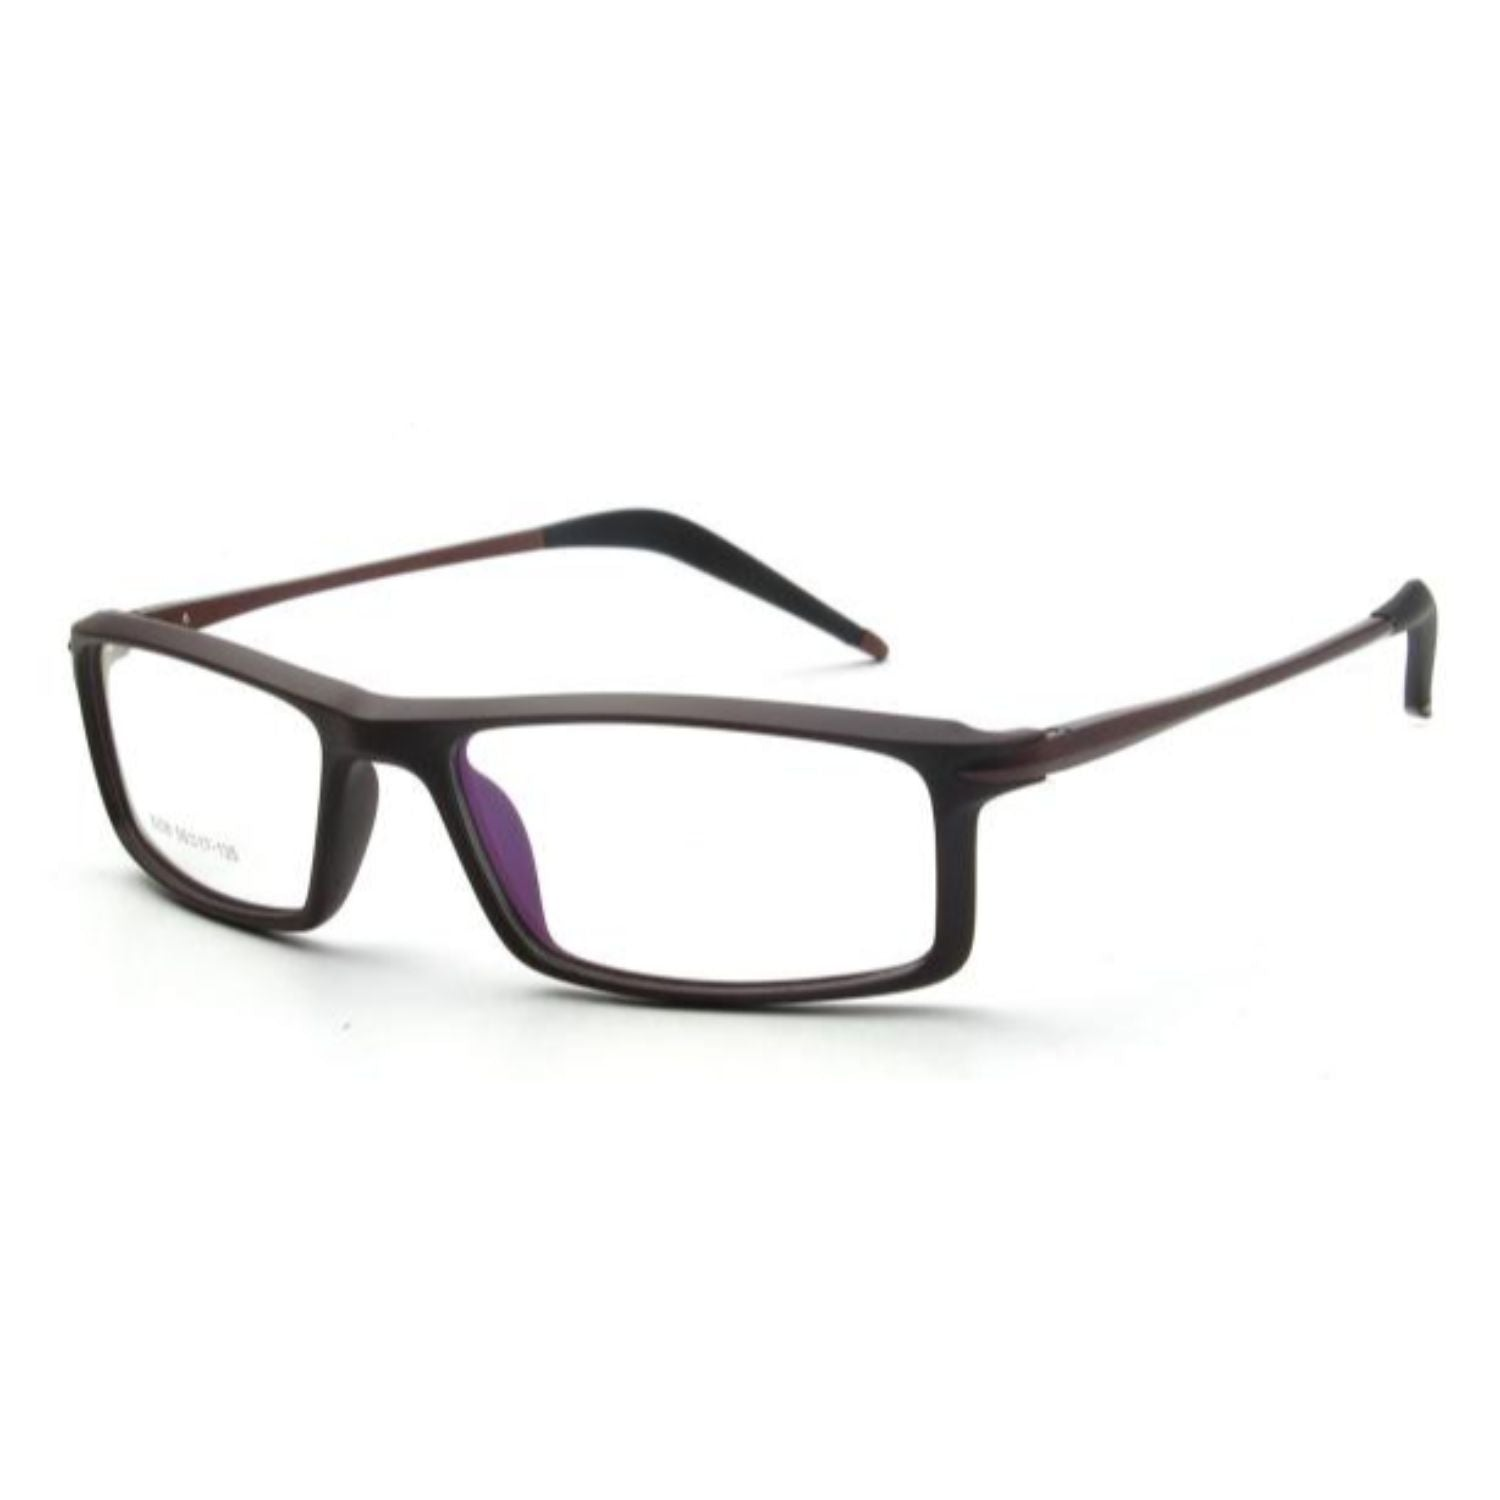 OTR5 - Classic Rectangle Sport Optical Glasses - Iris Fashion Inc. | Wholesale Sunglasses and Glasses